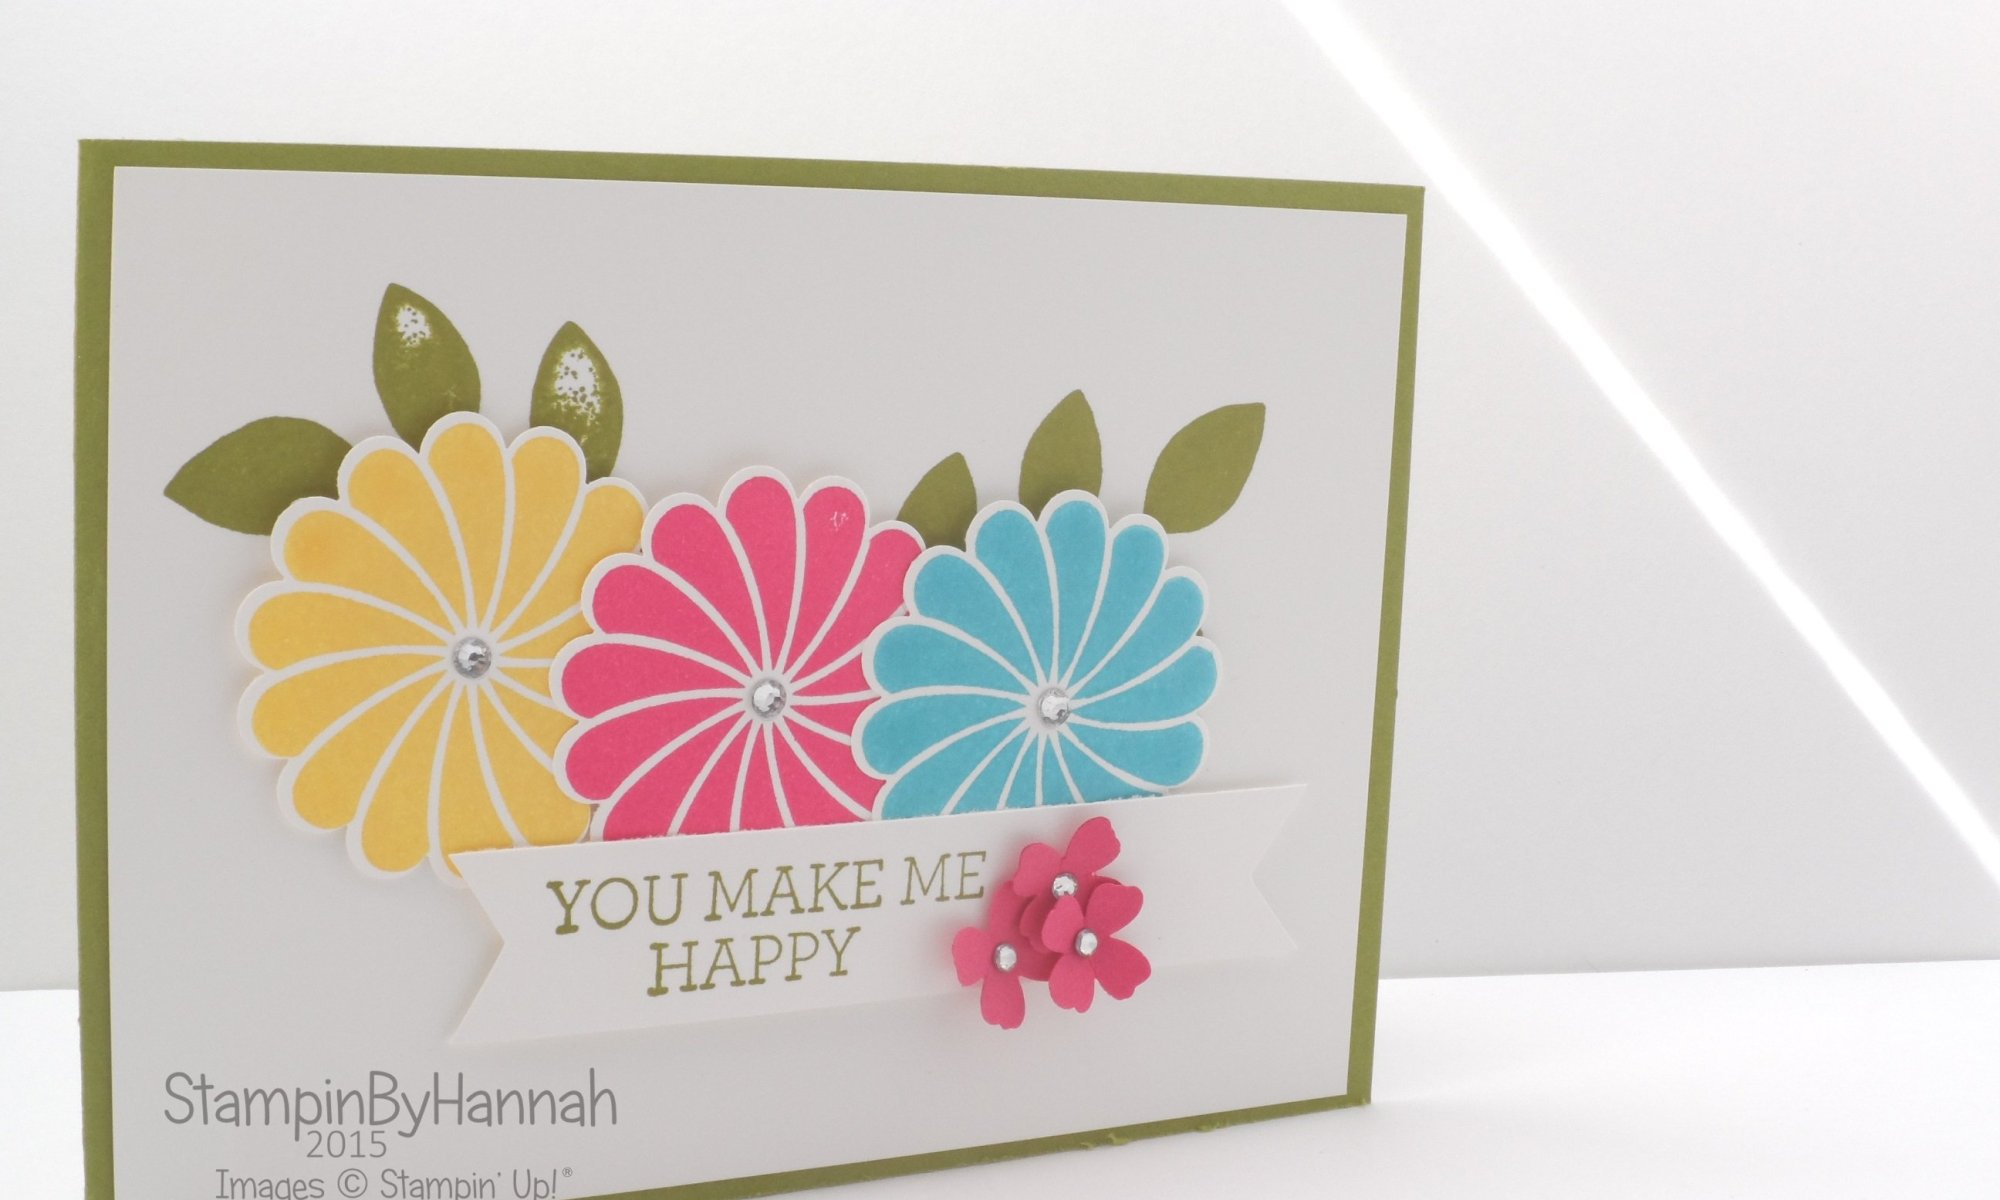 Stampin' Up! UK Freshly Made Sketches Crazy About You Video tutorial